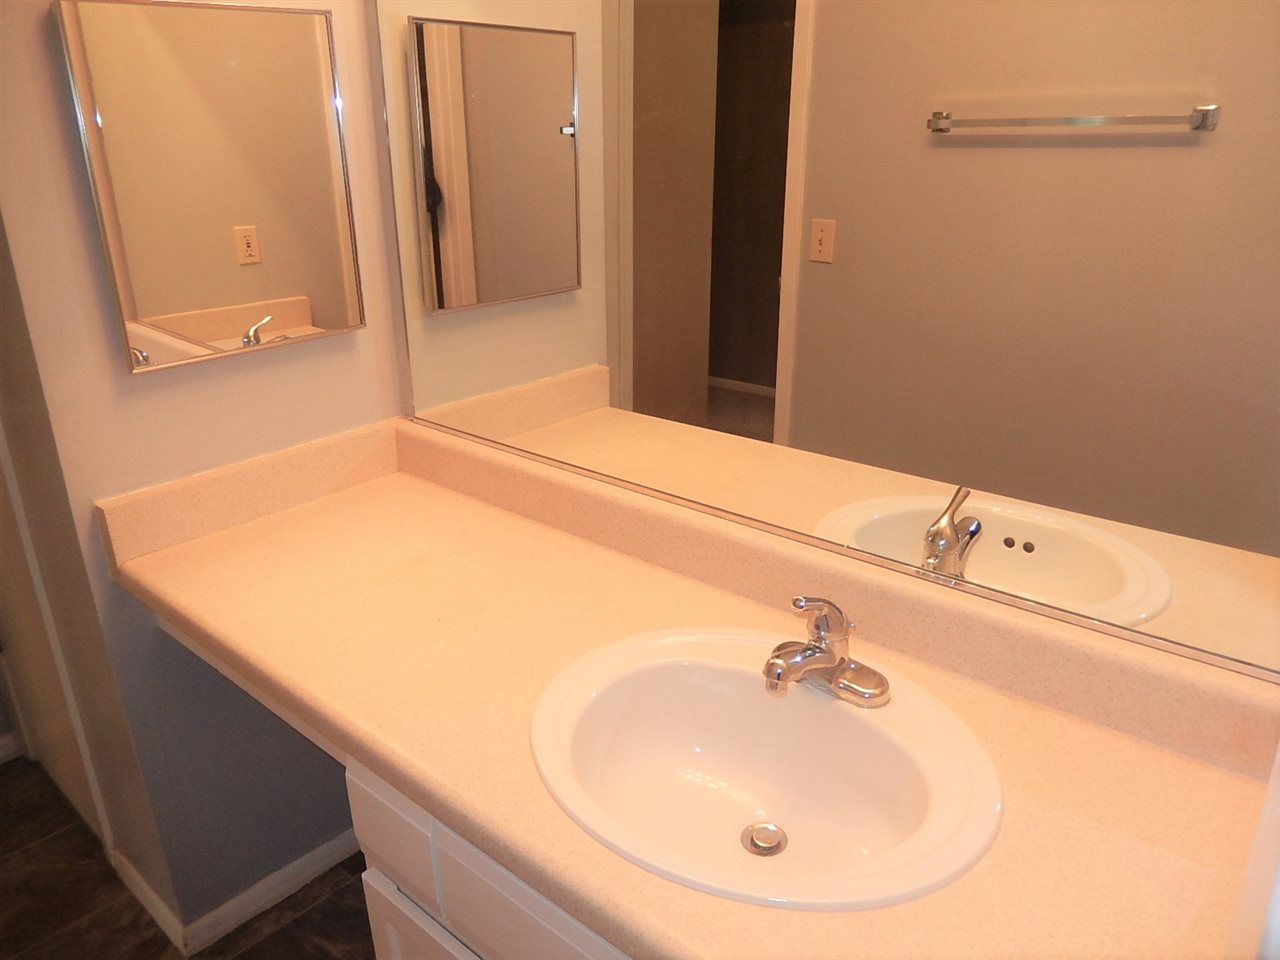 4314 Melody Ln, MADISON, Wisconsin 53704, 2 Bedrooms Bedrooms, ,1 BathroomBathrooms,Condominium,For Sale,4314 Melody Ln,1905425